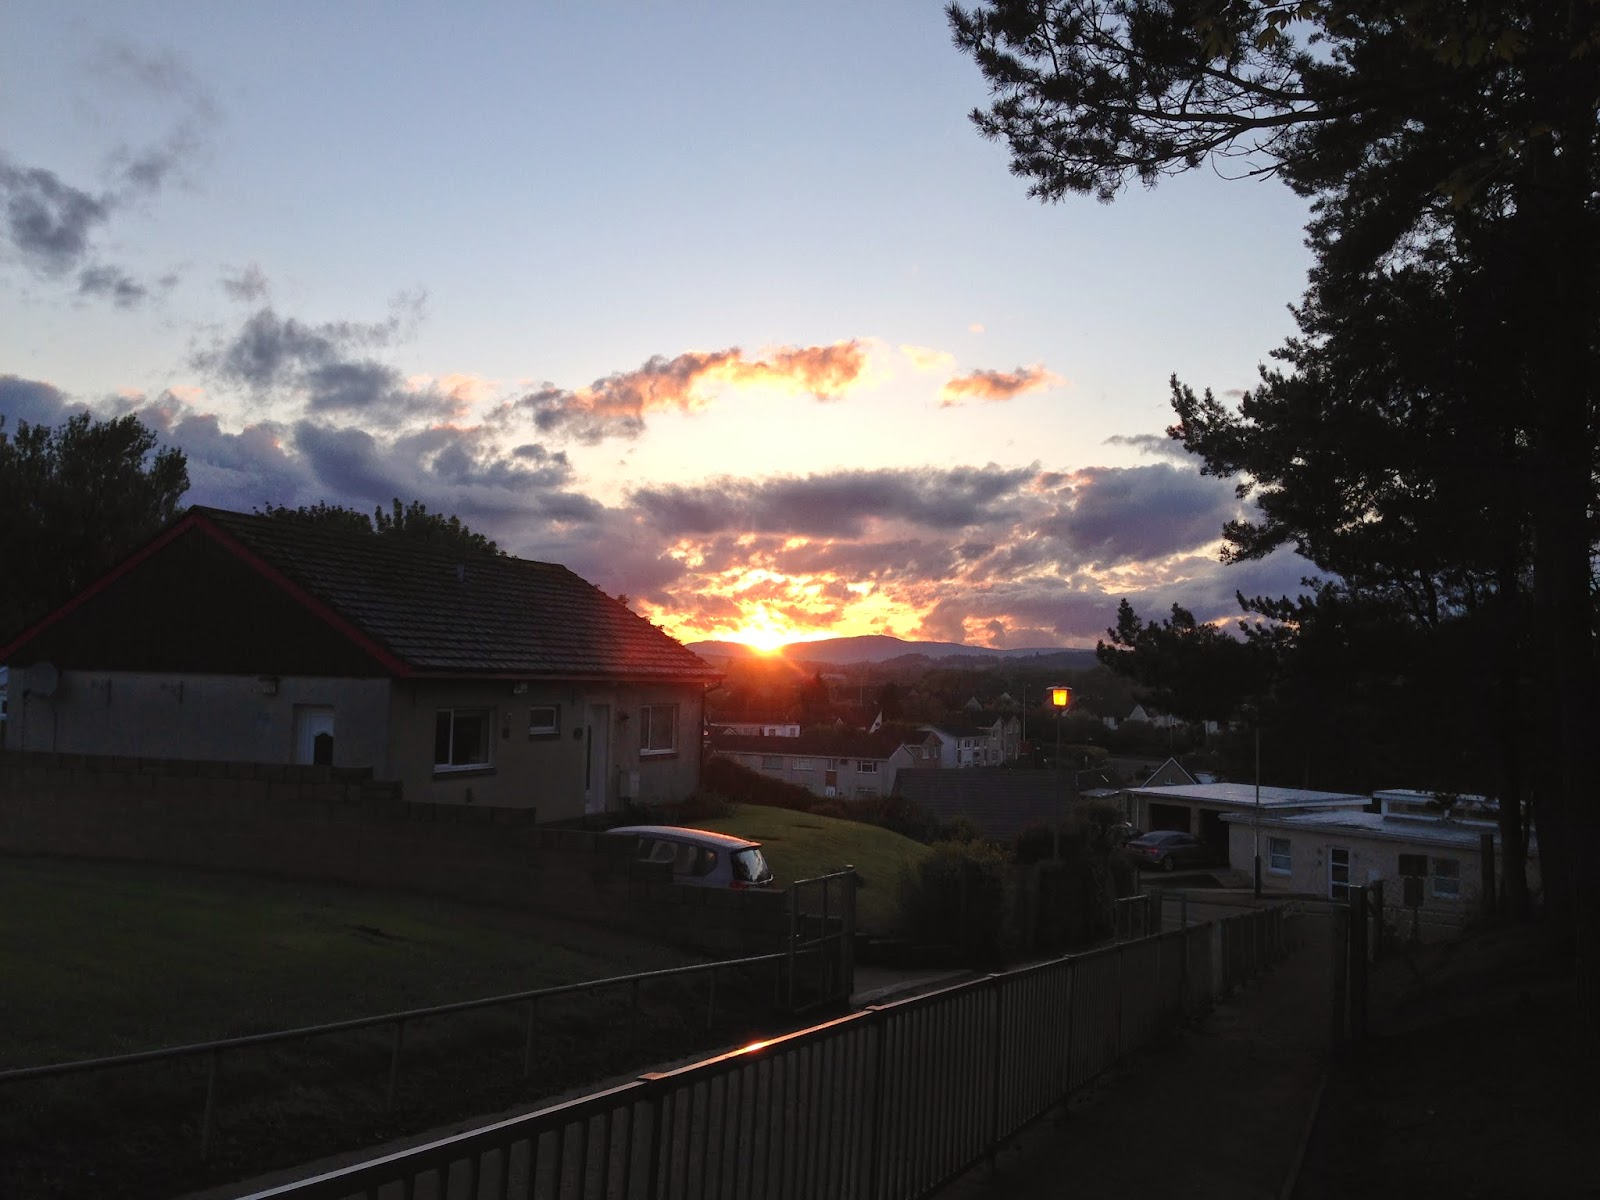 Sunset view from Barnill Primary School in Broughty Ferry 13 May 2014